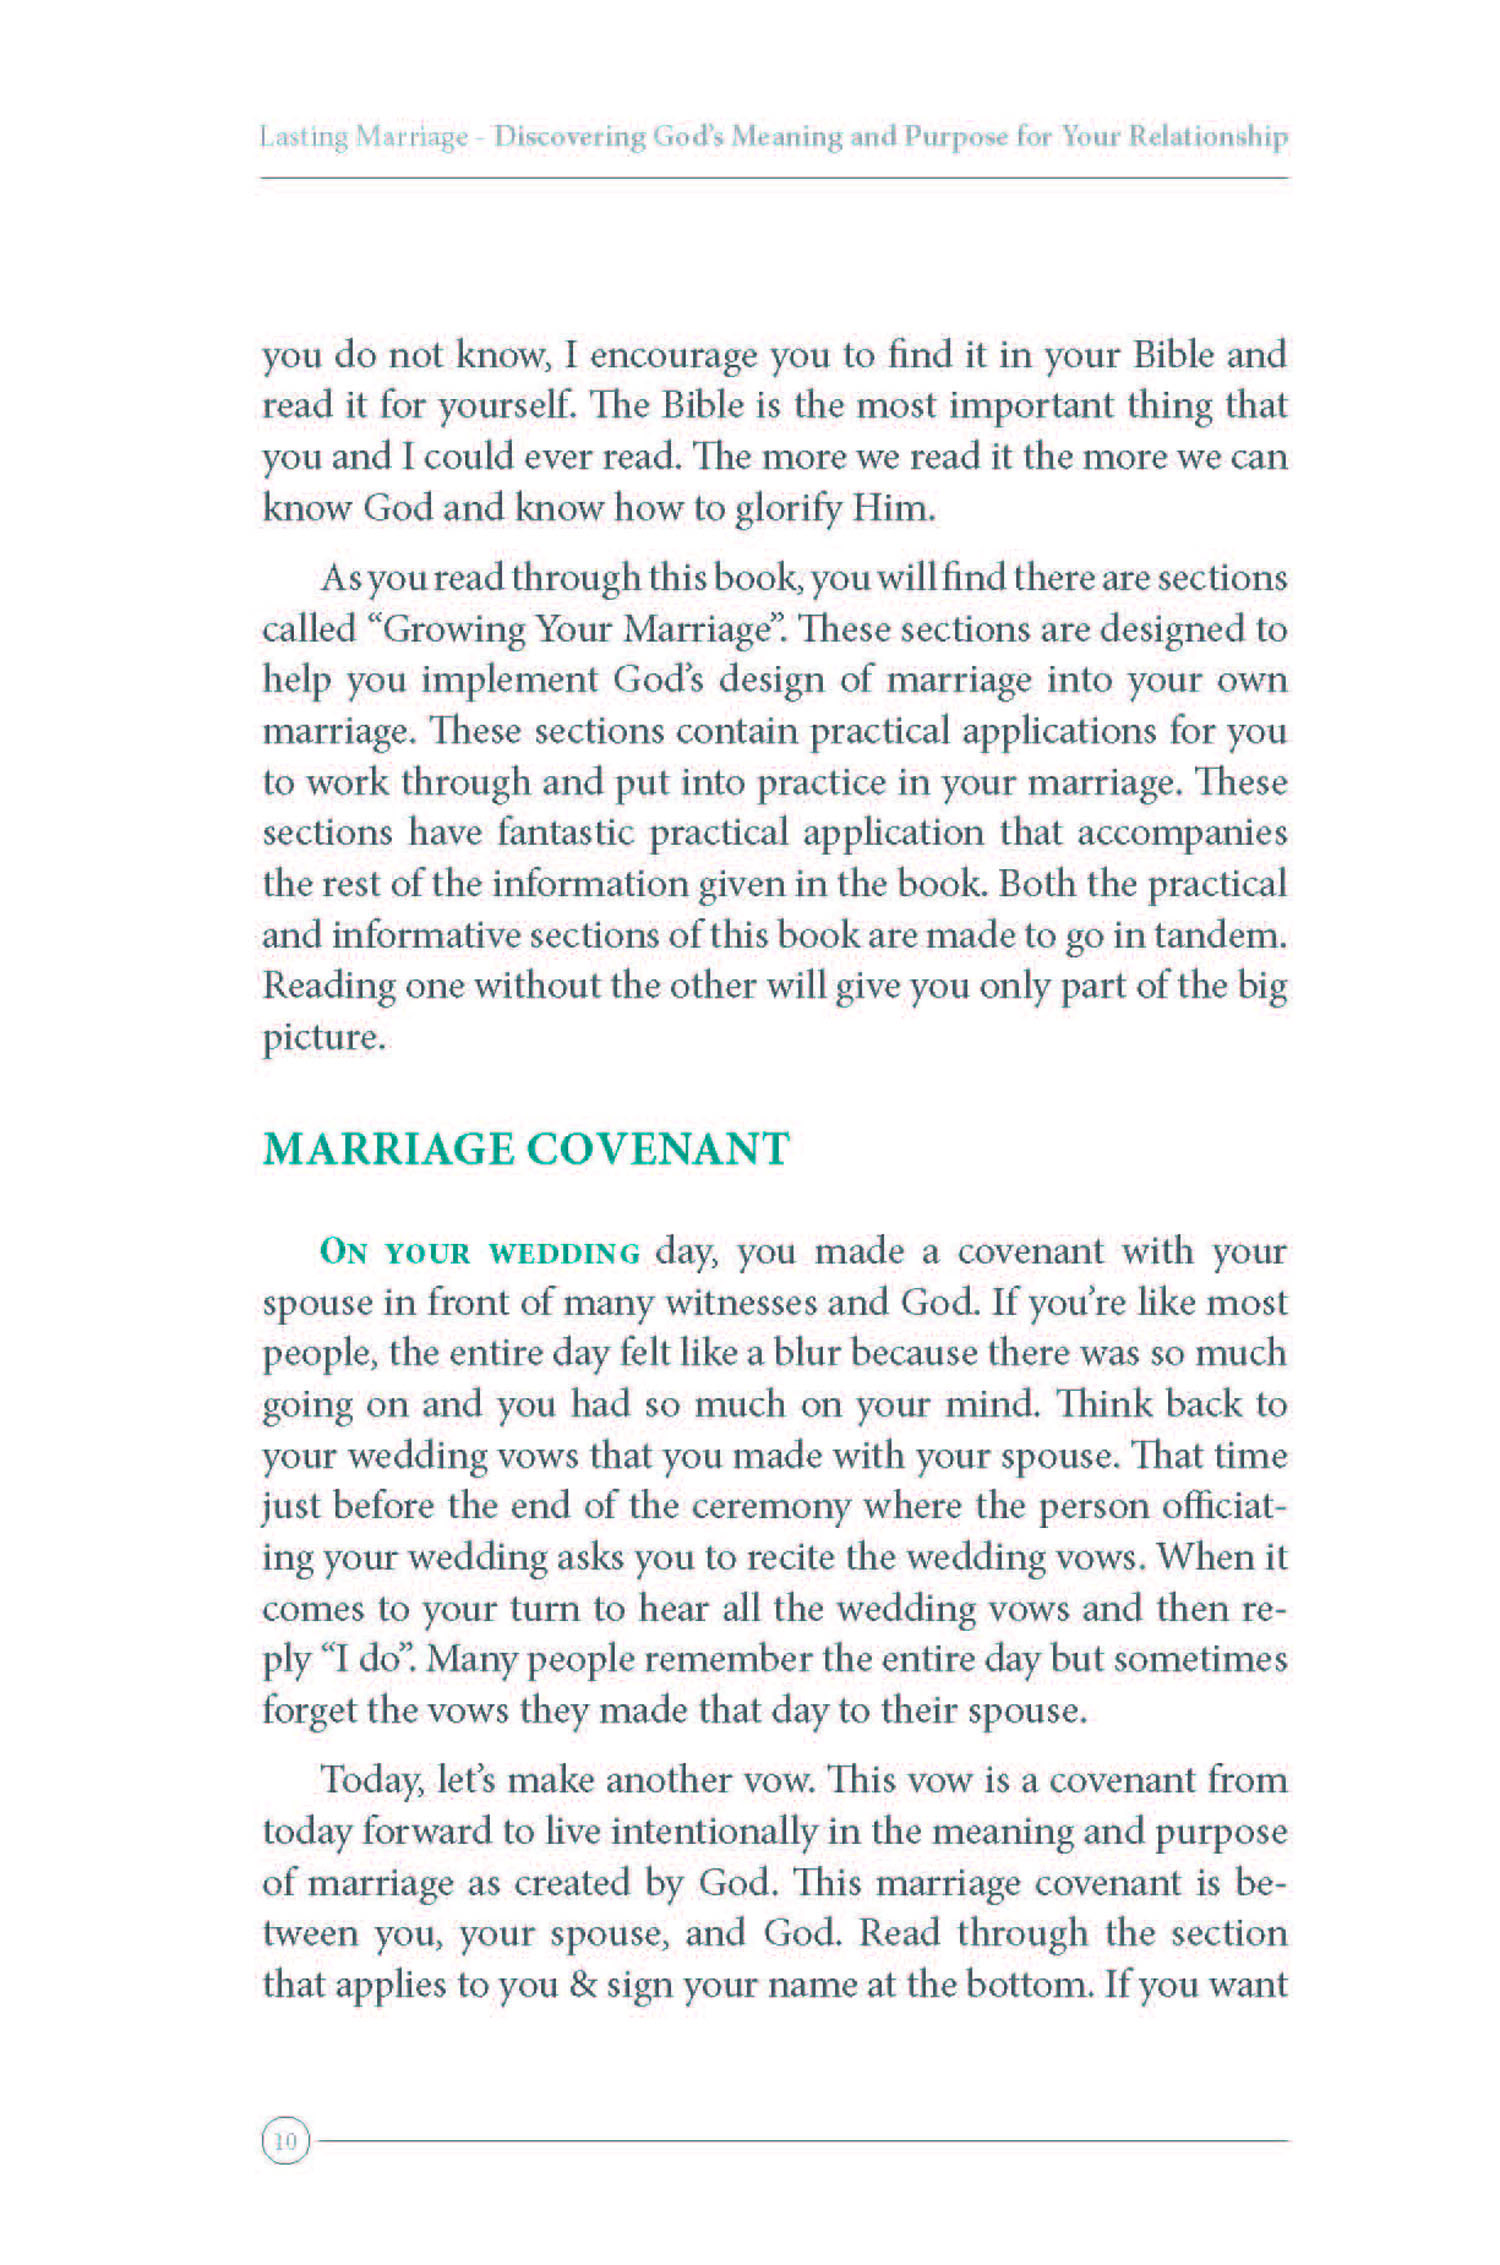 print_last_marriage_Page_010